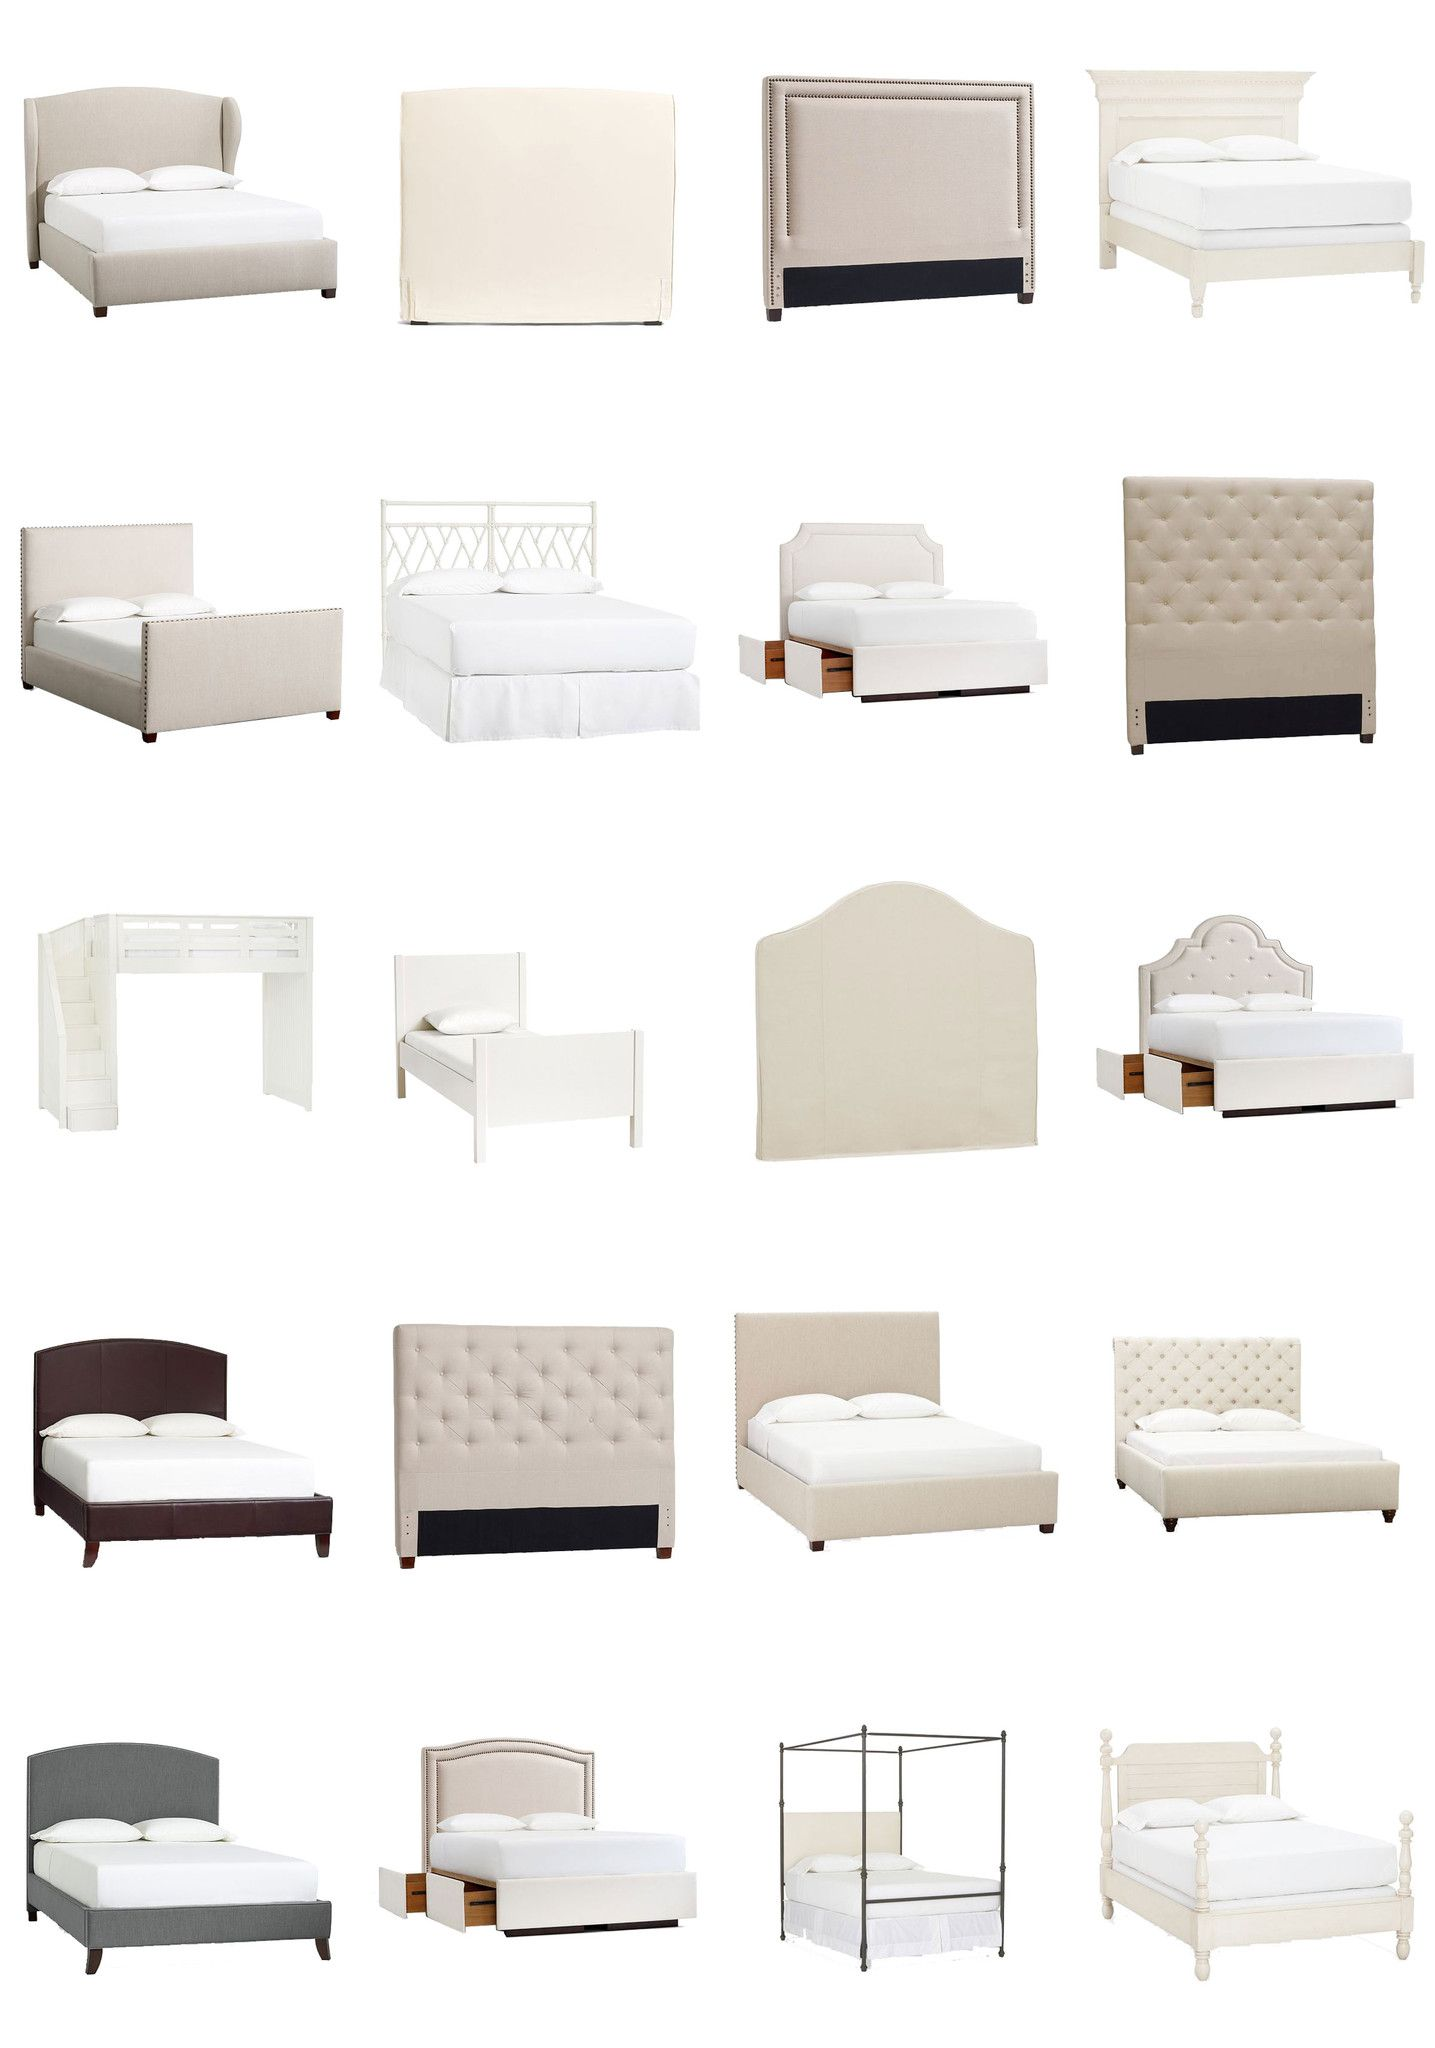 Photoshop psd bed blocks v1 cad design free cad blocks for Bed elevation blocks